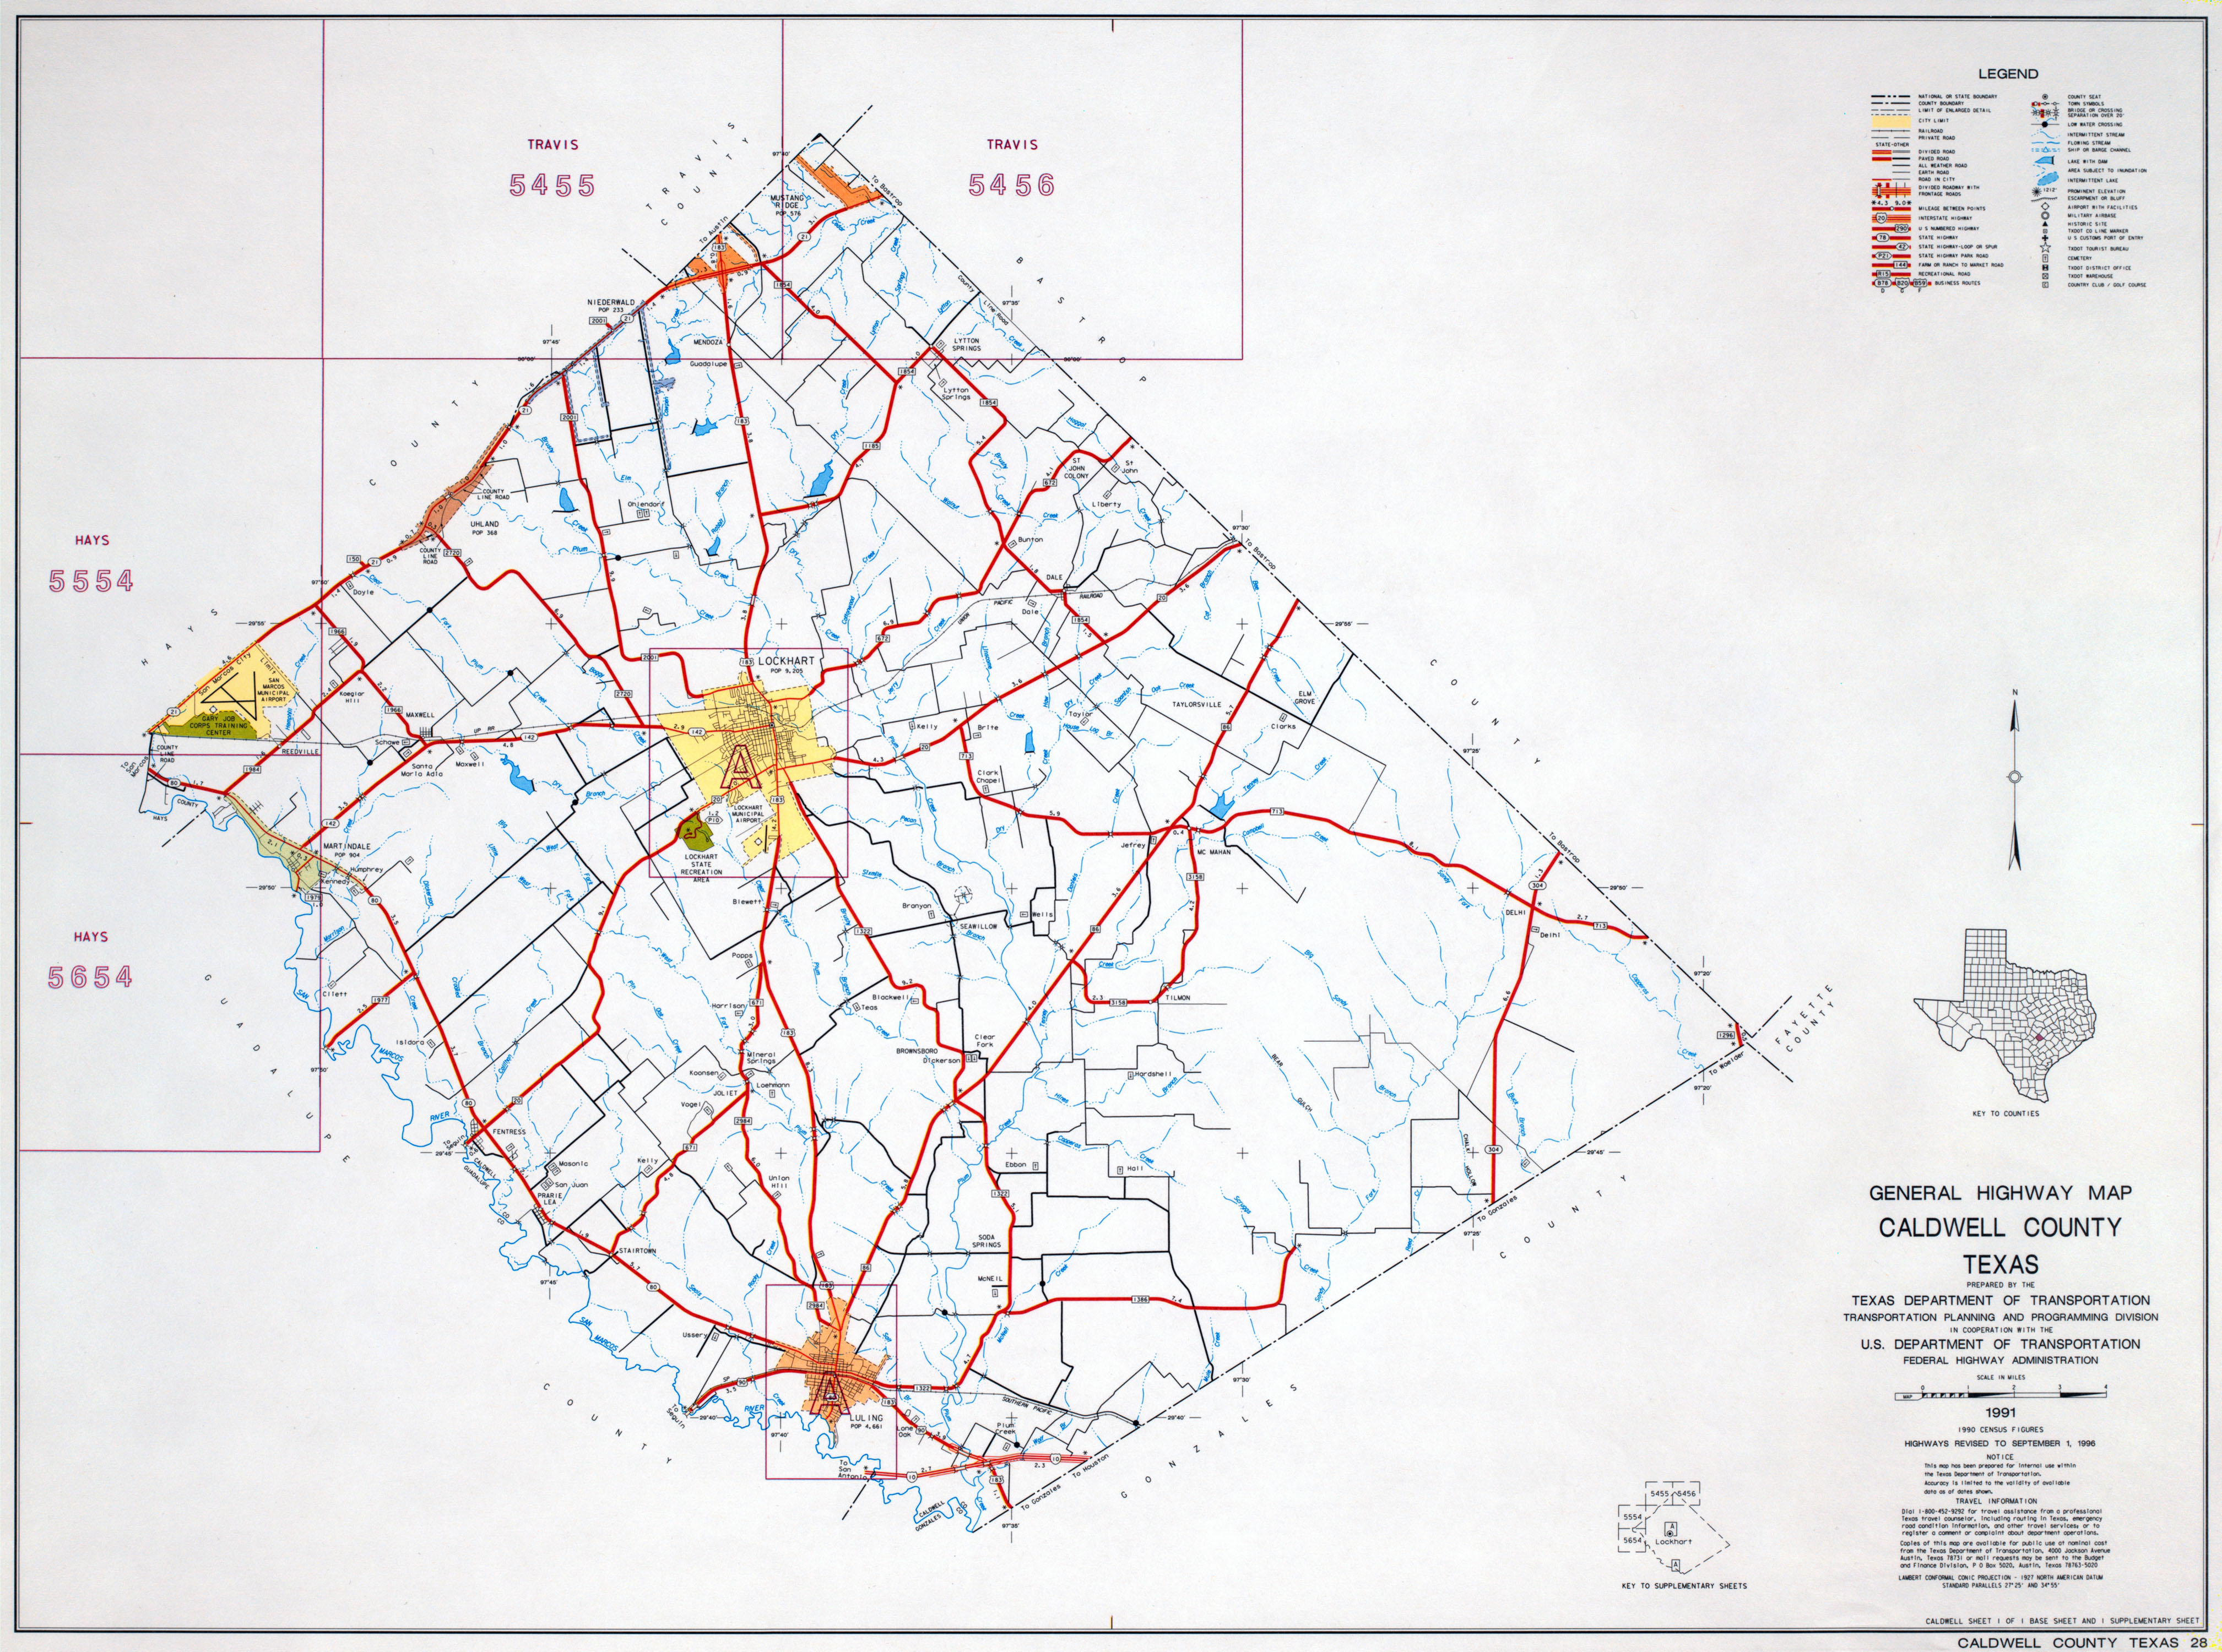 Texas County Highway Maps Browse PerryCastañeda Map Collection - Texas road map with counties